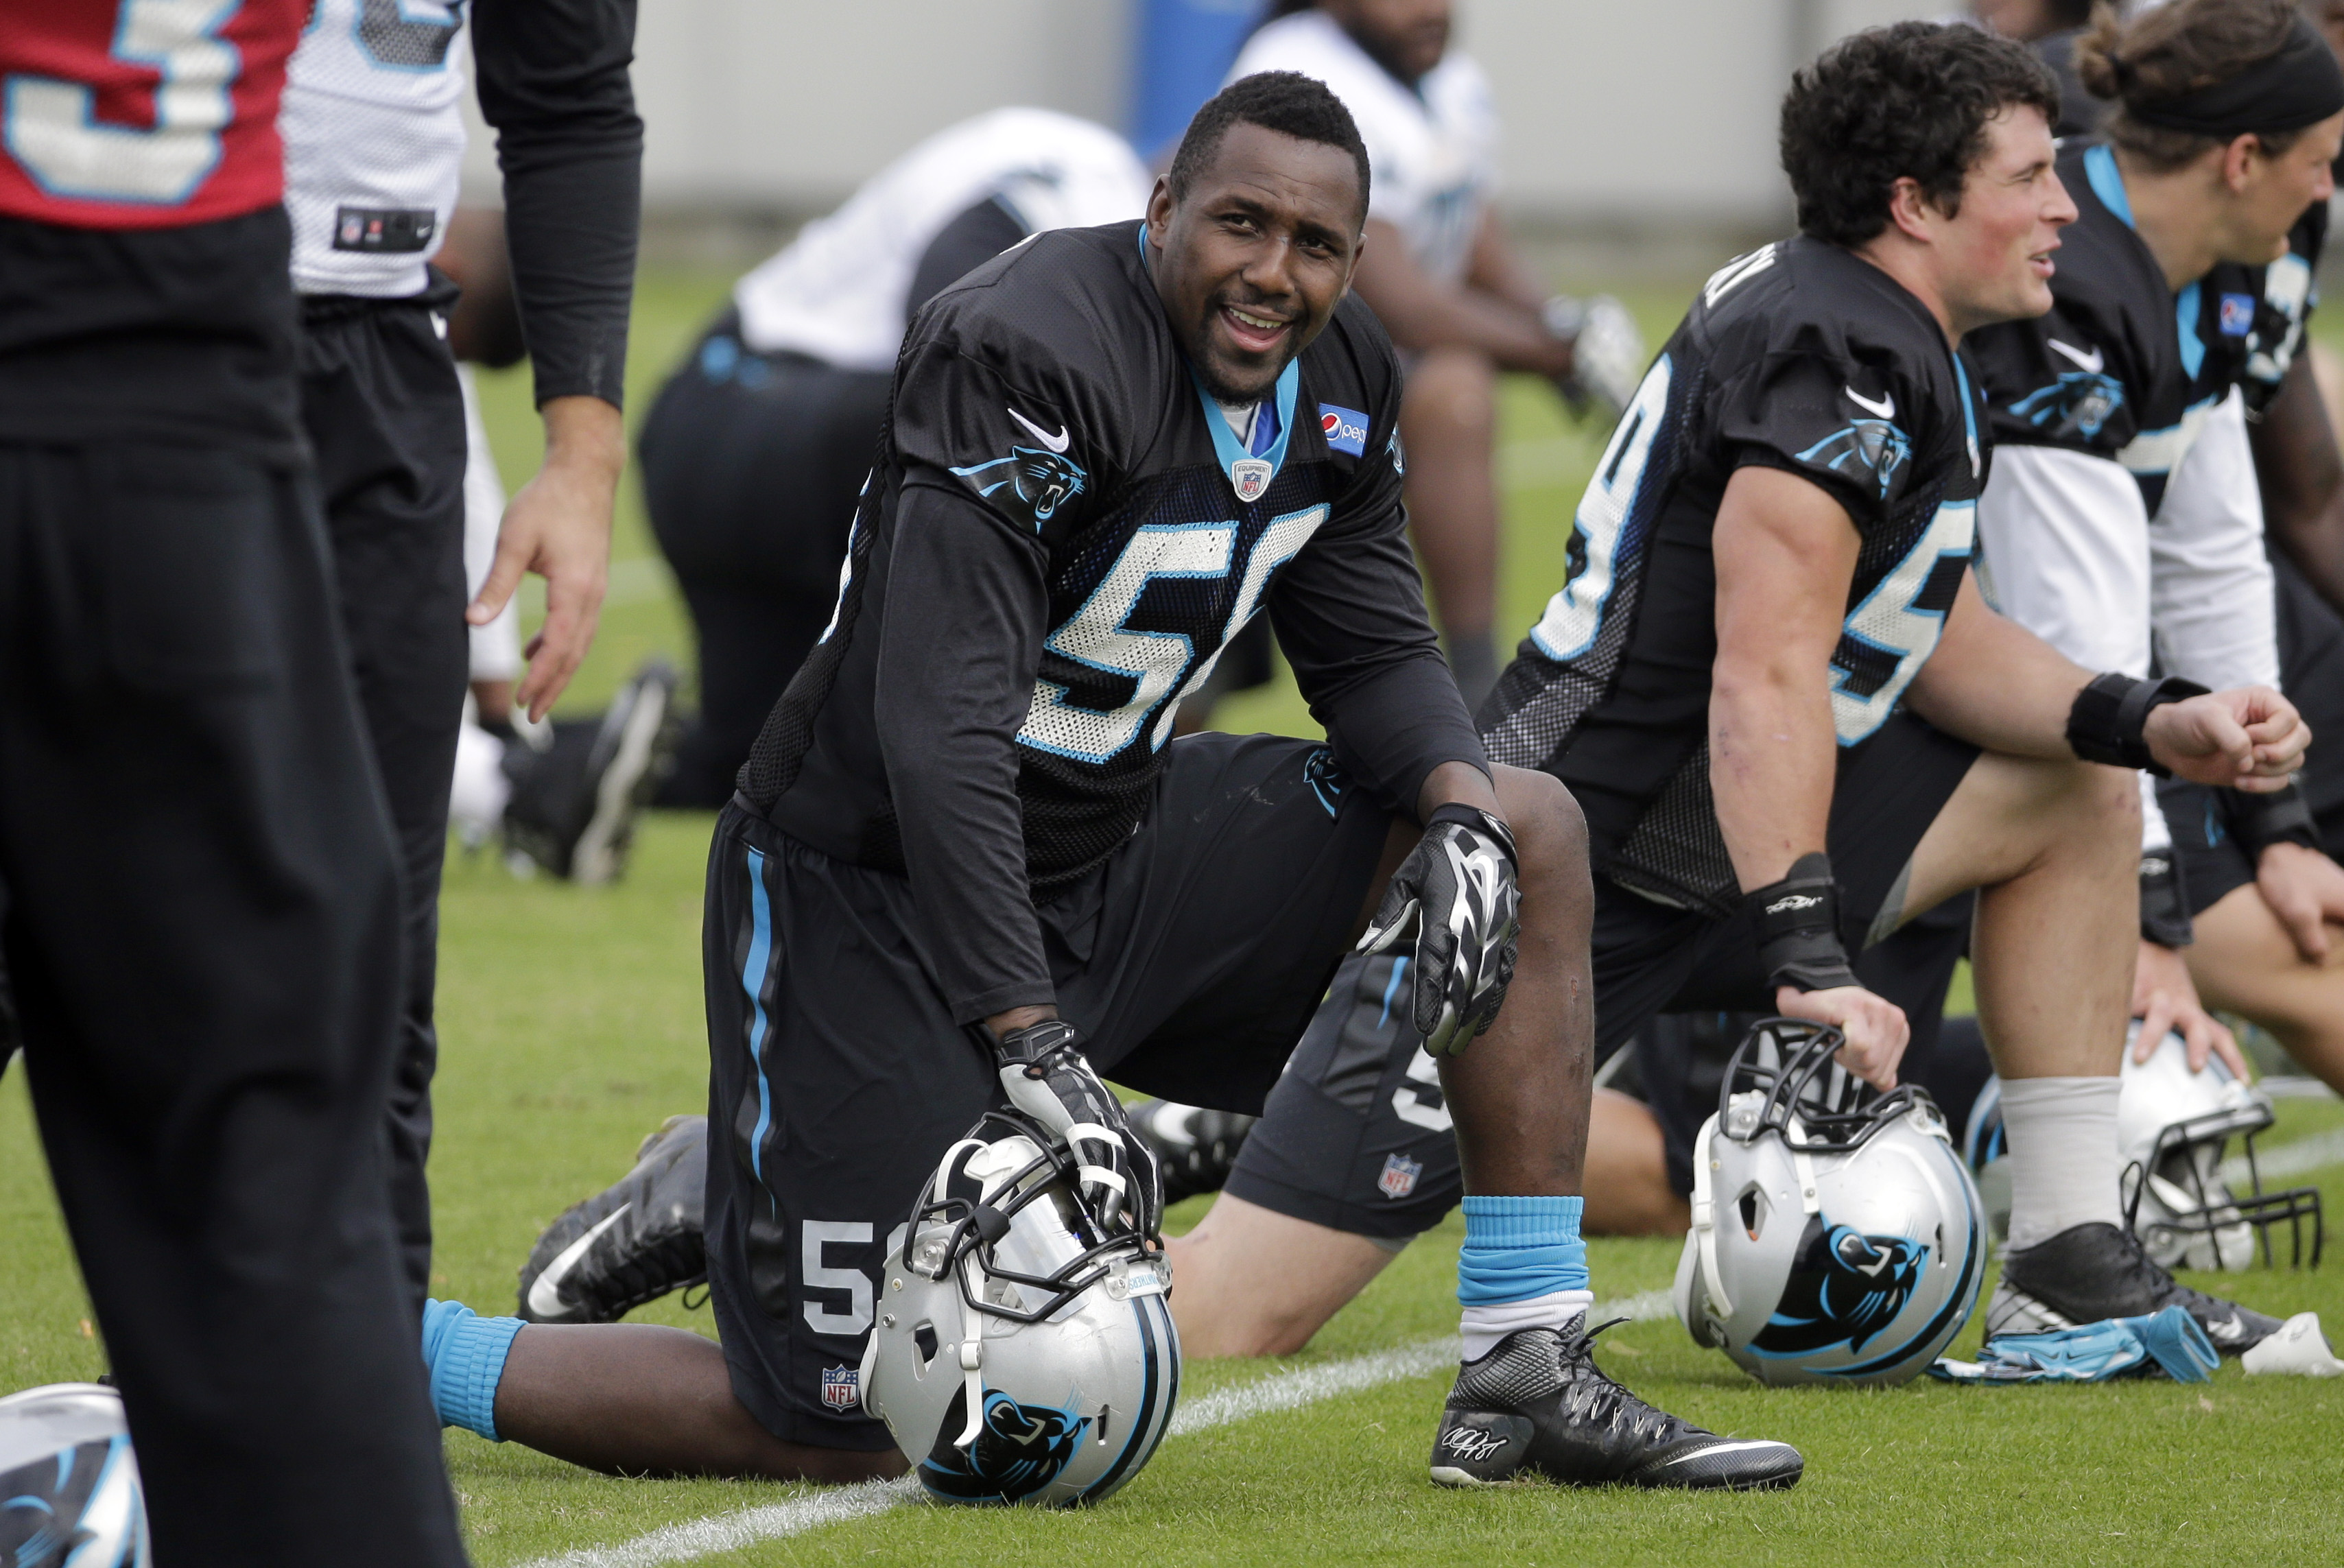 Carolina Panthers' Thomas Davis (58) smiles as he stretches with the team before an NFL football practice in Charlotte, N.C., Thursday, Nov. 12, 2015. (AP Photo/Chuck Burton)